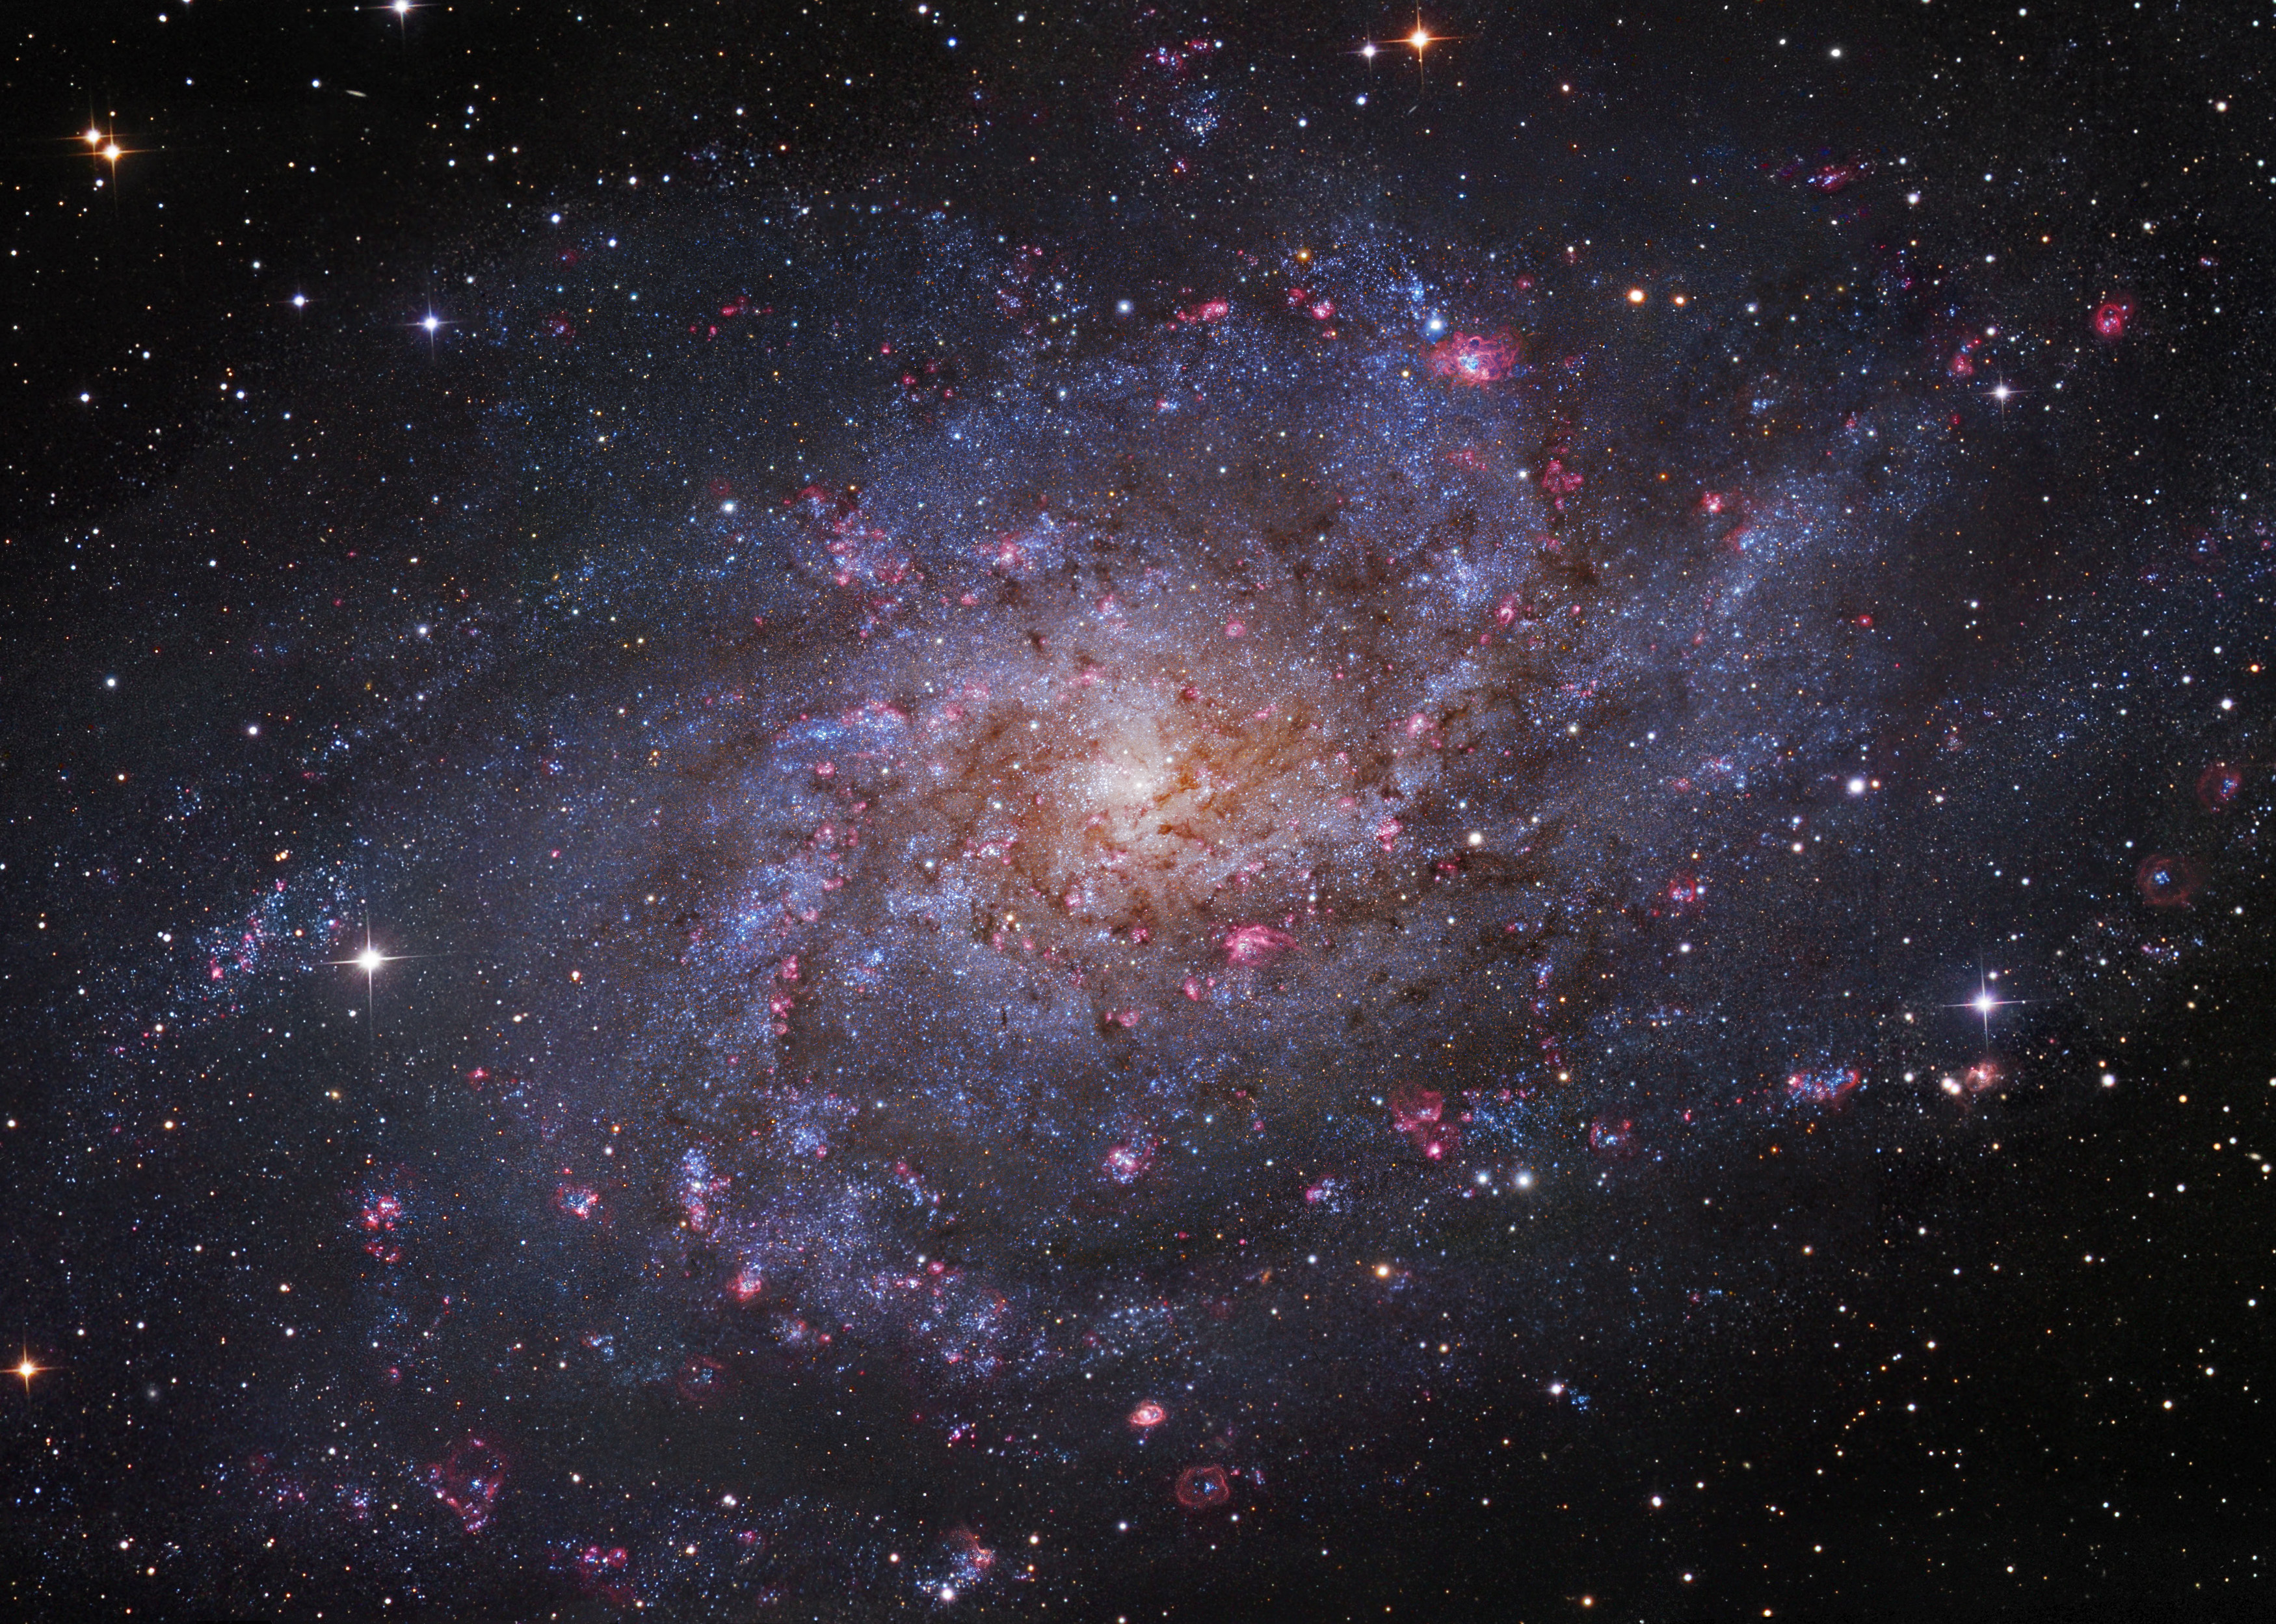 nasa galaxy pictures high resolution - photo #12